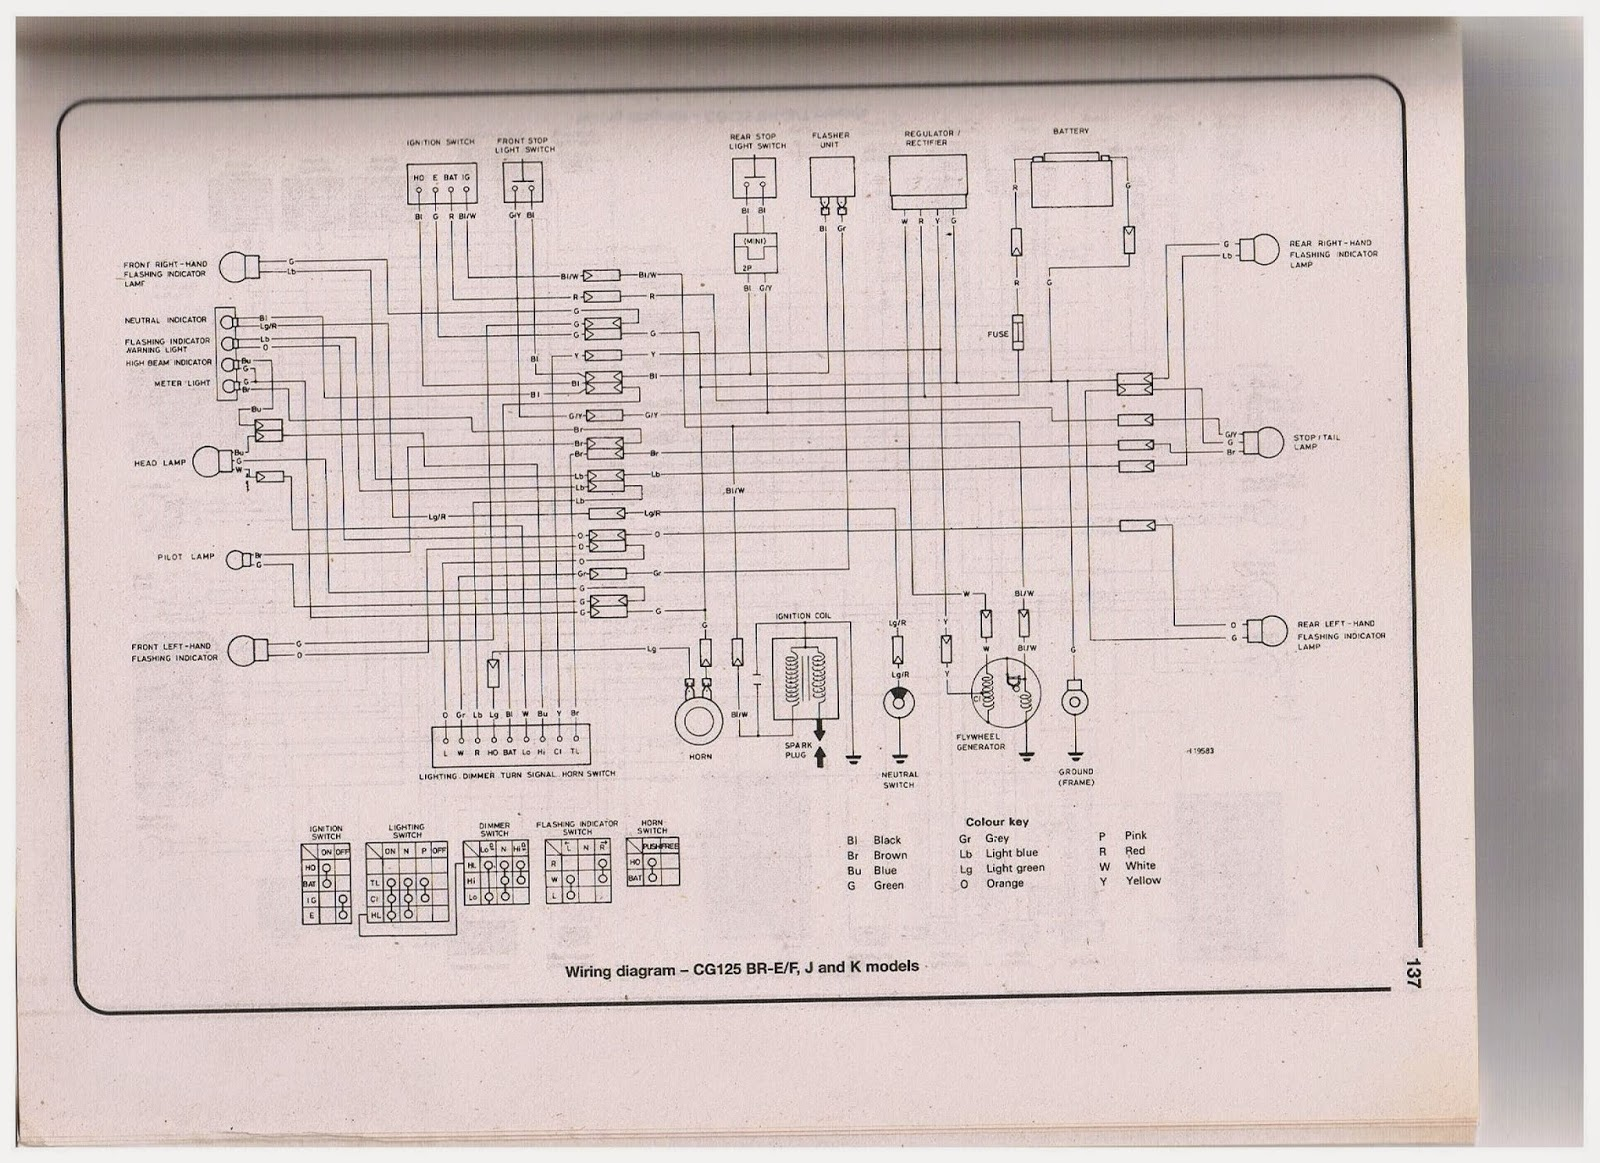 honda cg 125 owner blog honda cg 125 wiring diagrams and honda cg 125 br e f j k models wiring diagram